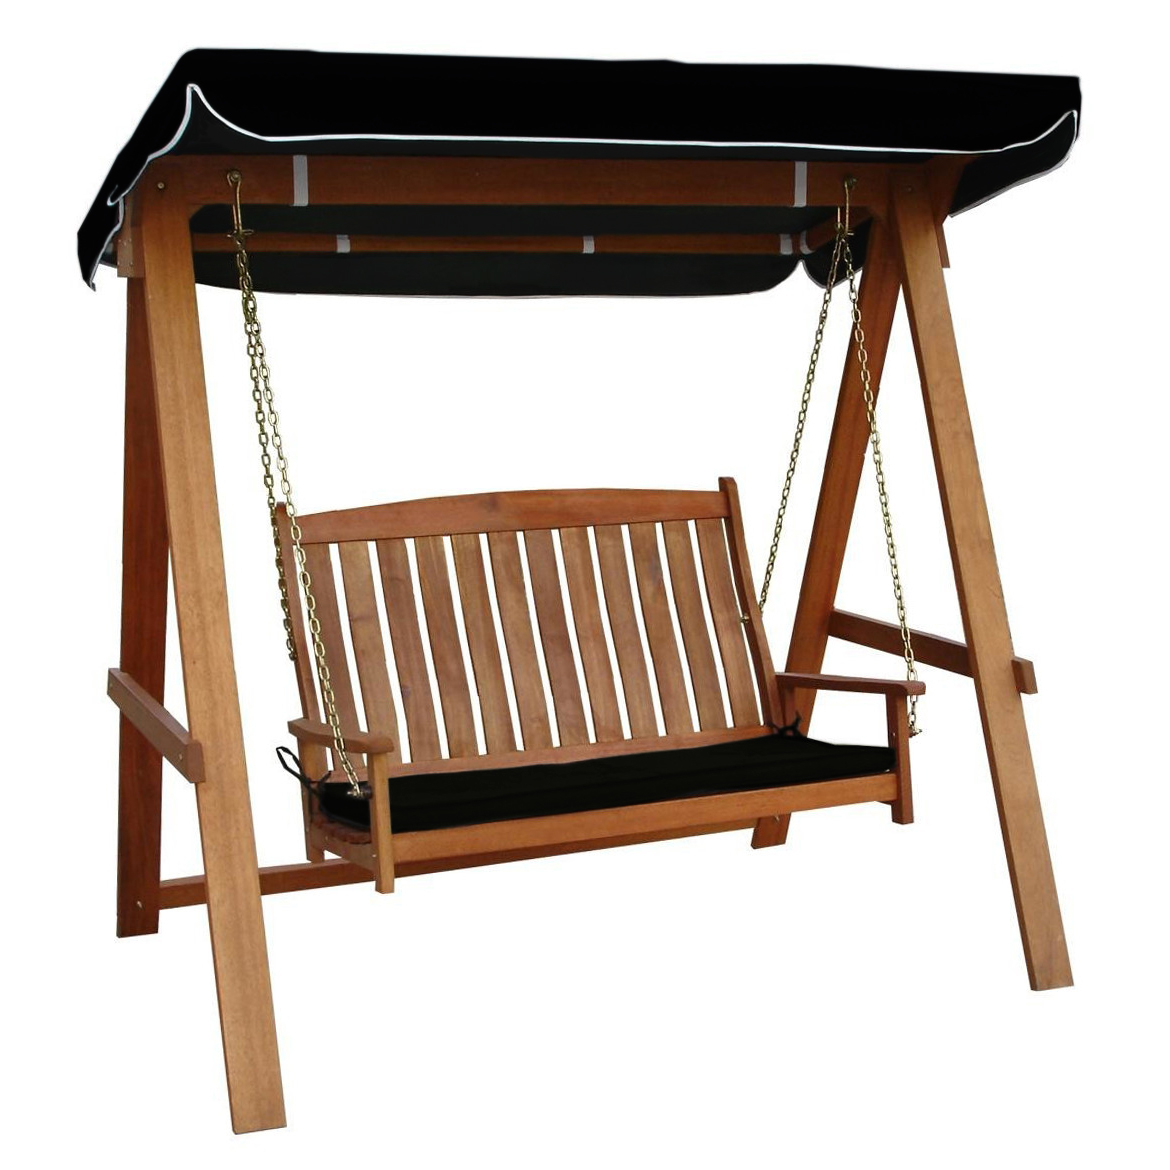 Rivers 2 Seat Hardwood Swing With Canopy & Cushion Intended For 2 Person Light Teak Oil Wood Outdoor Swings (View 16 of 25)